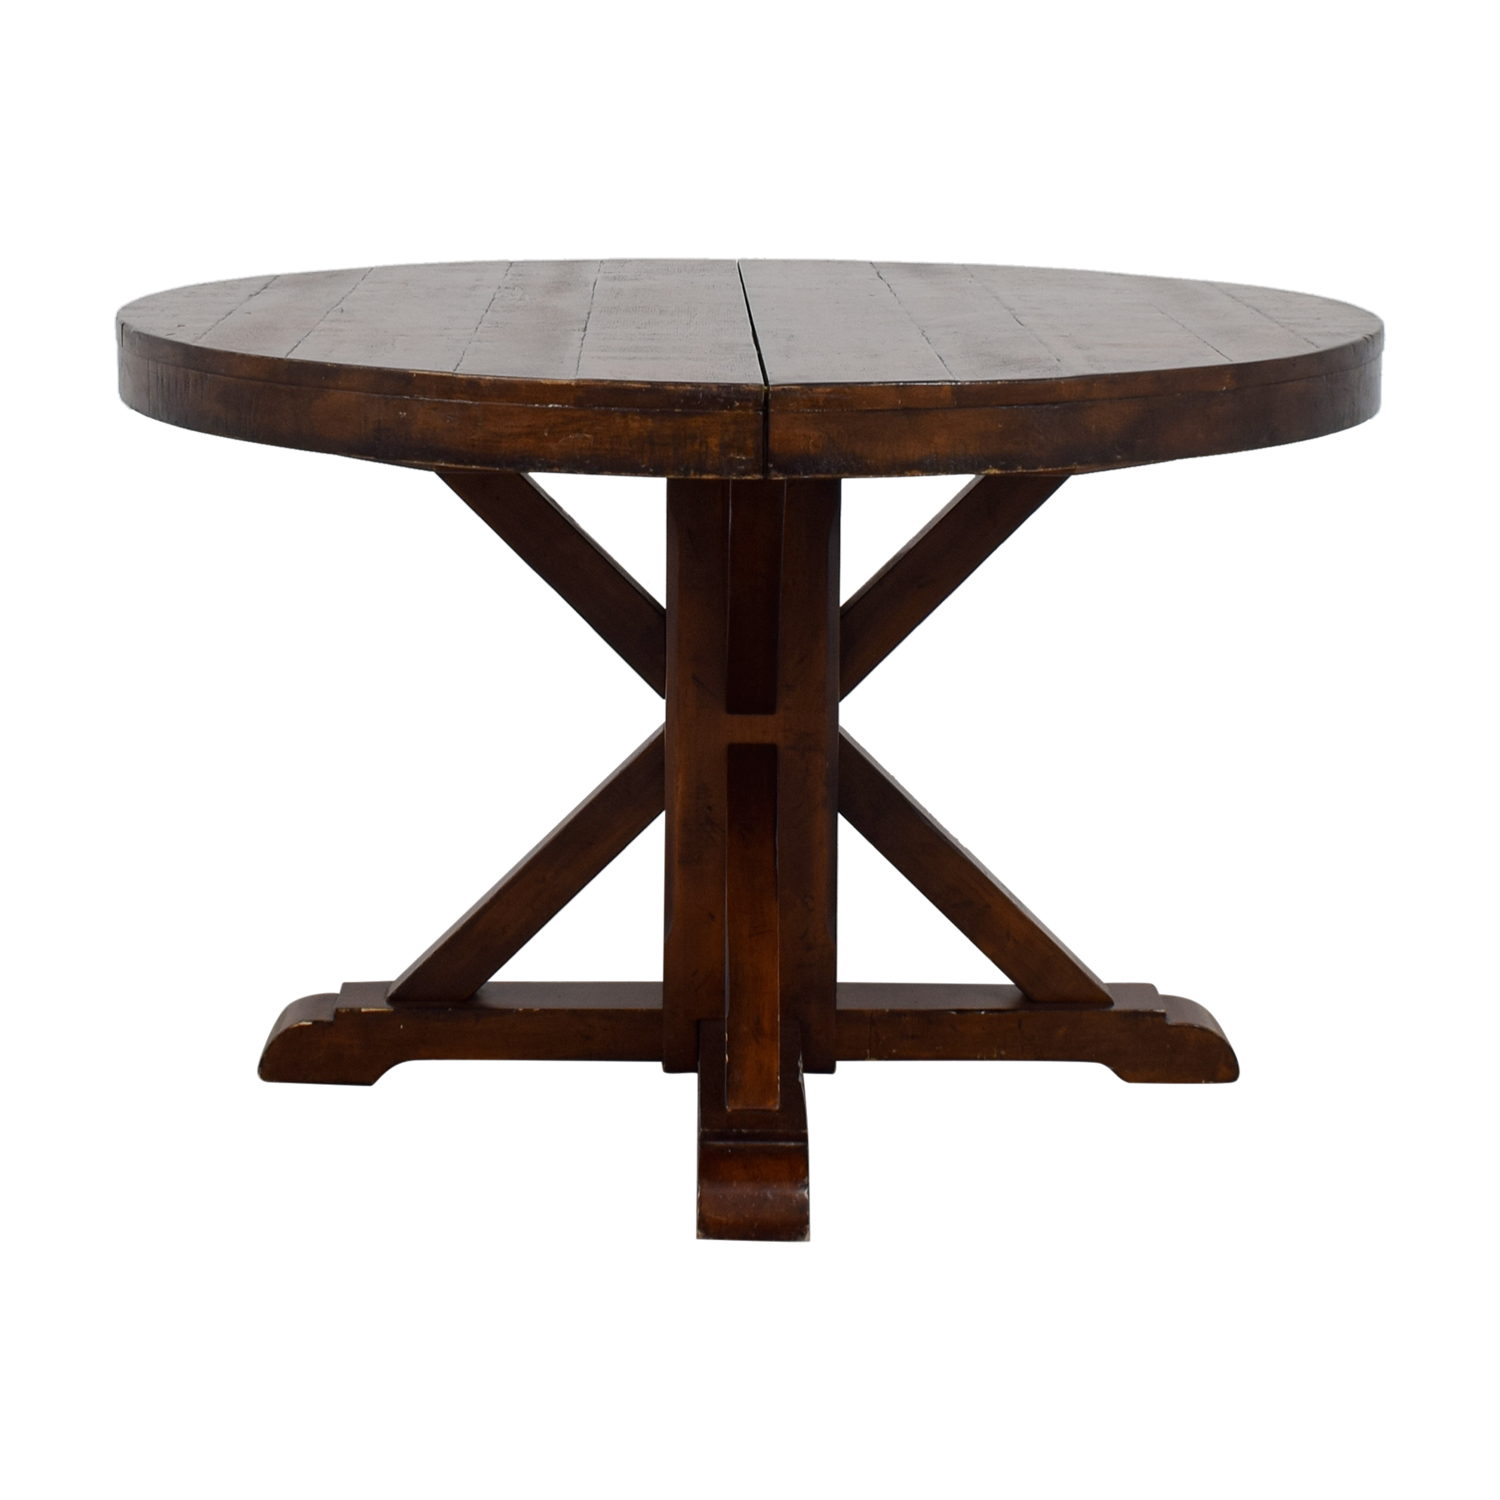 Pottery Barn Pottery Barn Benchwright Extending Round Pedestal Dining Table Dinner Tables